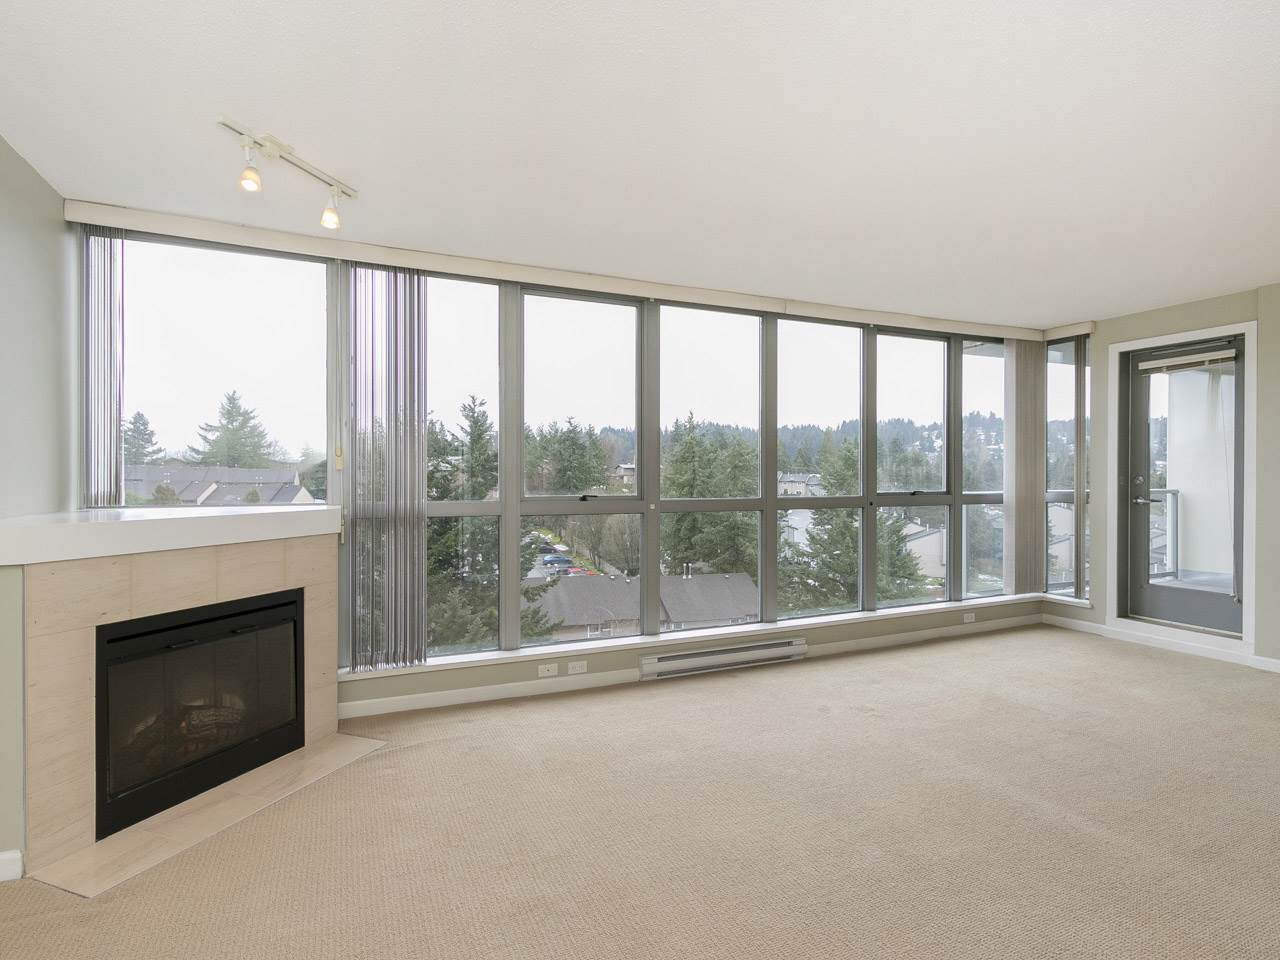 Main Photo: 1002 295 GUILDFORD Way in Port Moody: North Shore Pt Moody Condo for sale : MLS® # R2244280